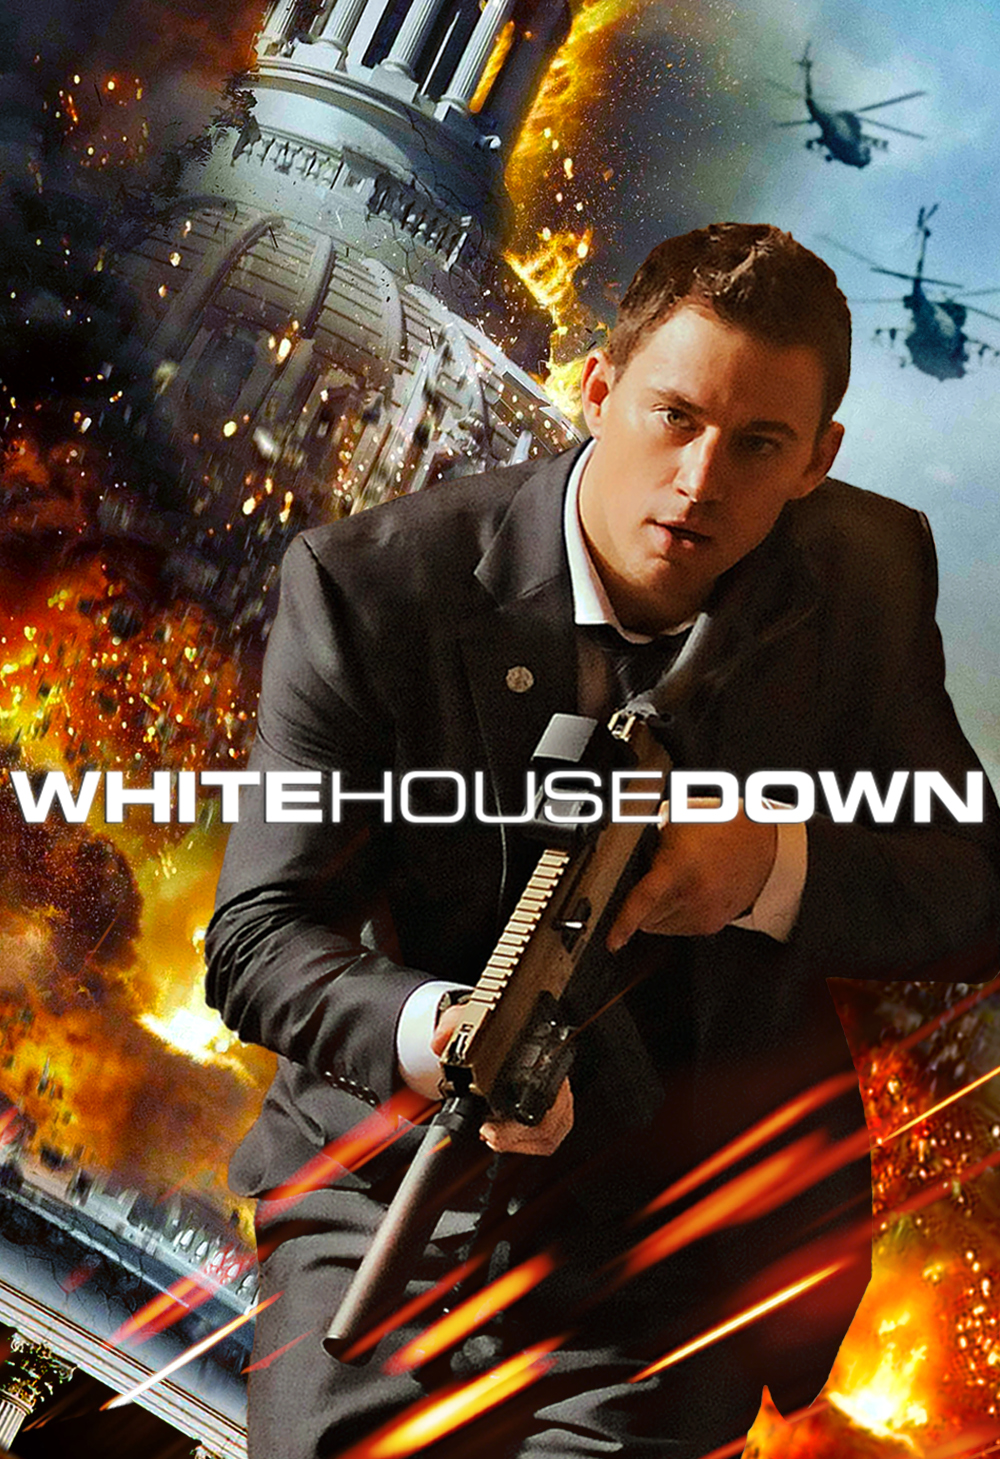 white house down images white house down hd wallpaper and background photos 36225295. Black Bedroom Furniture Sets. Home Design Ideas